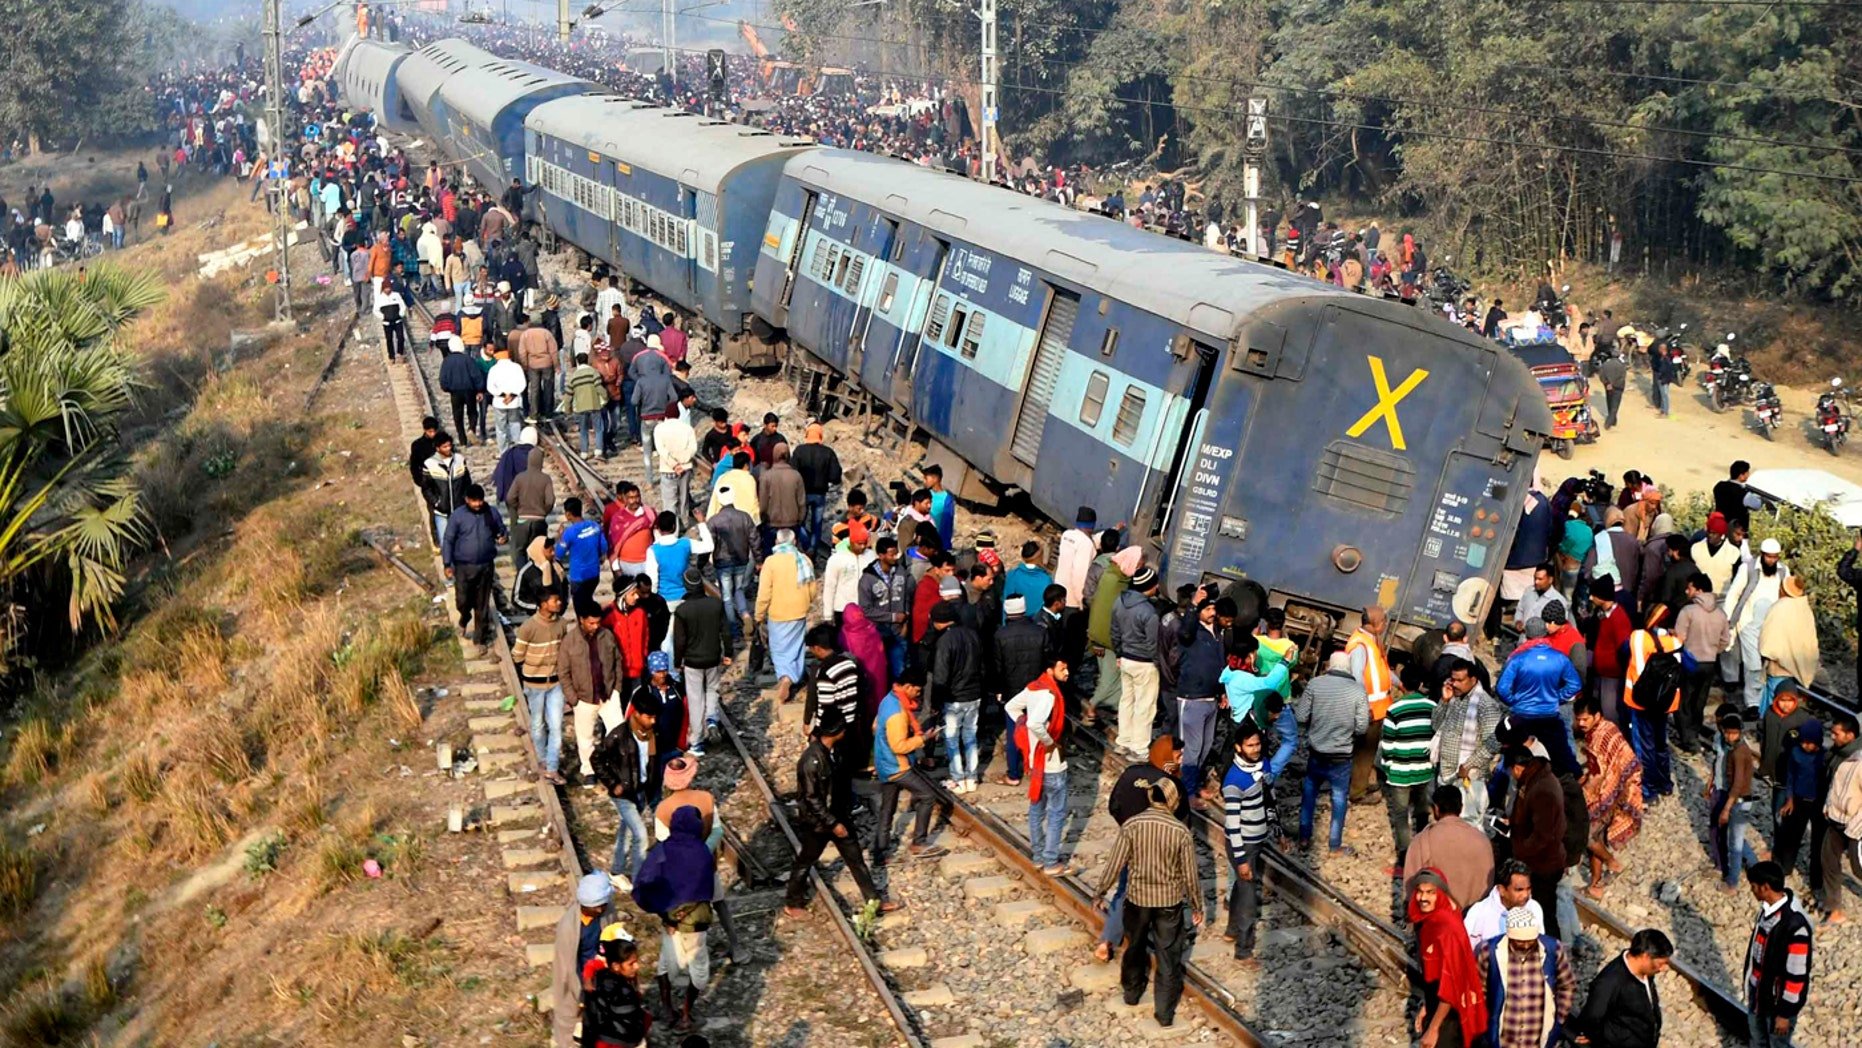 Rescue workers look for survivors as locals stand around the derailed coaches of a train, 20 miles north of Patna, the Bihar state capital of India, Sunday, Feb. 3, 2019.